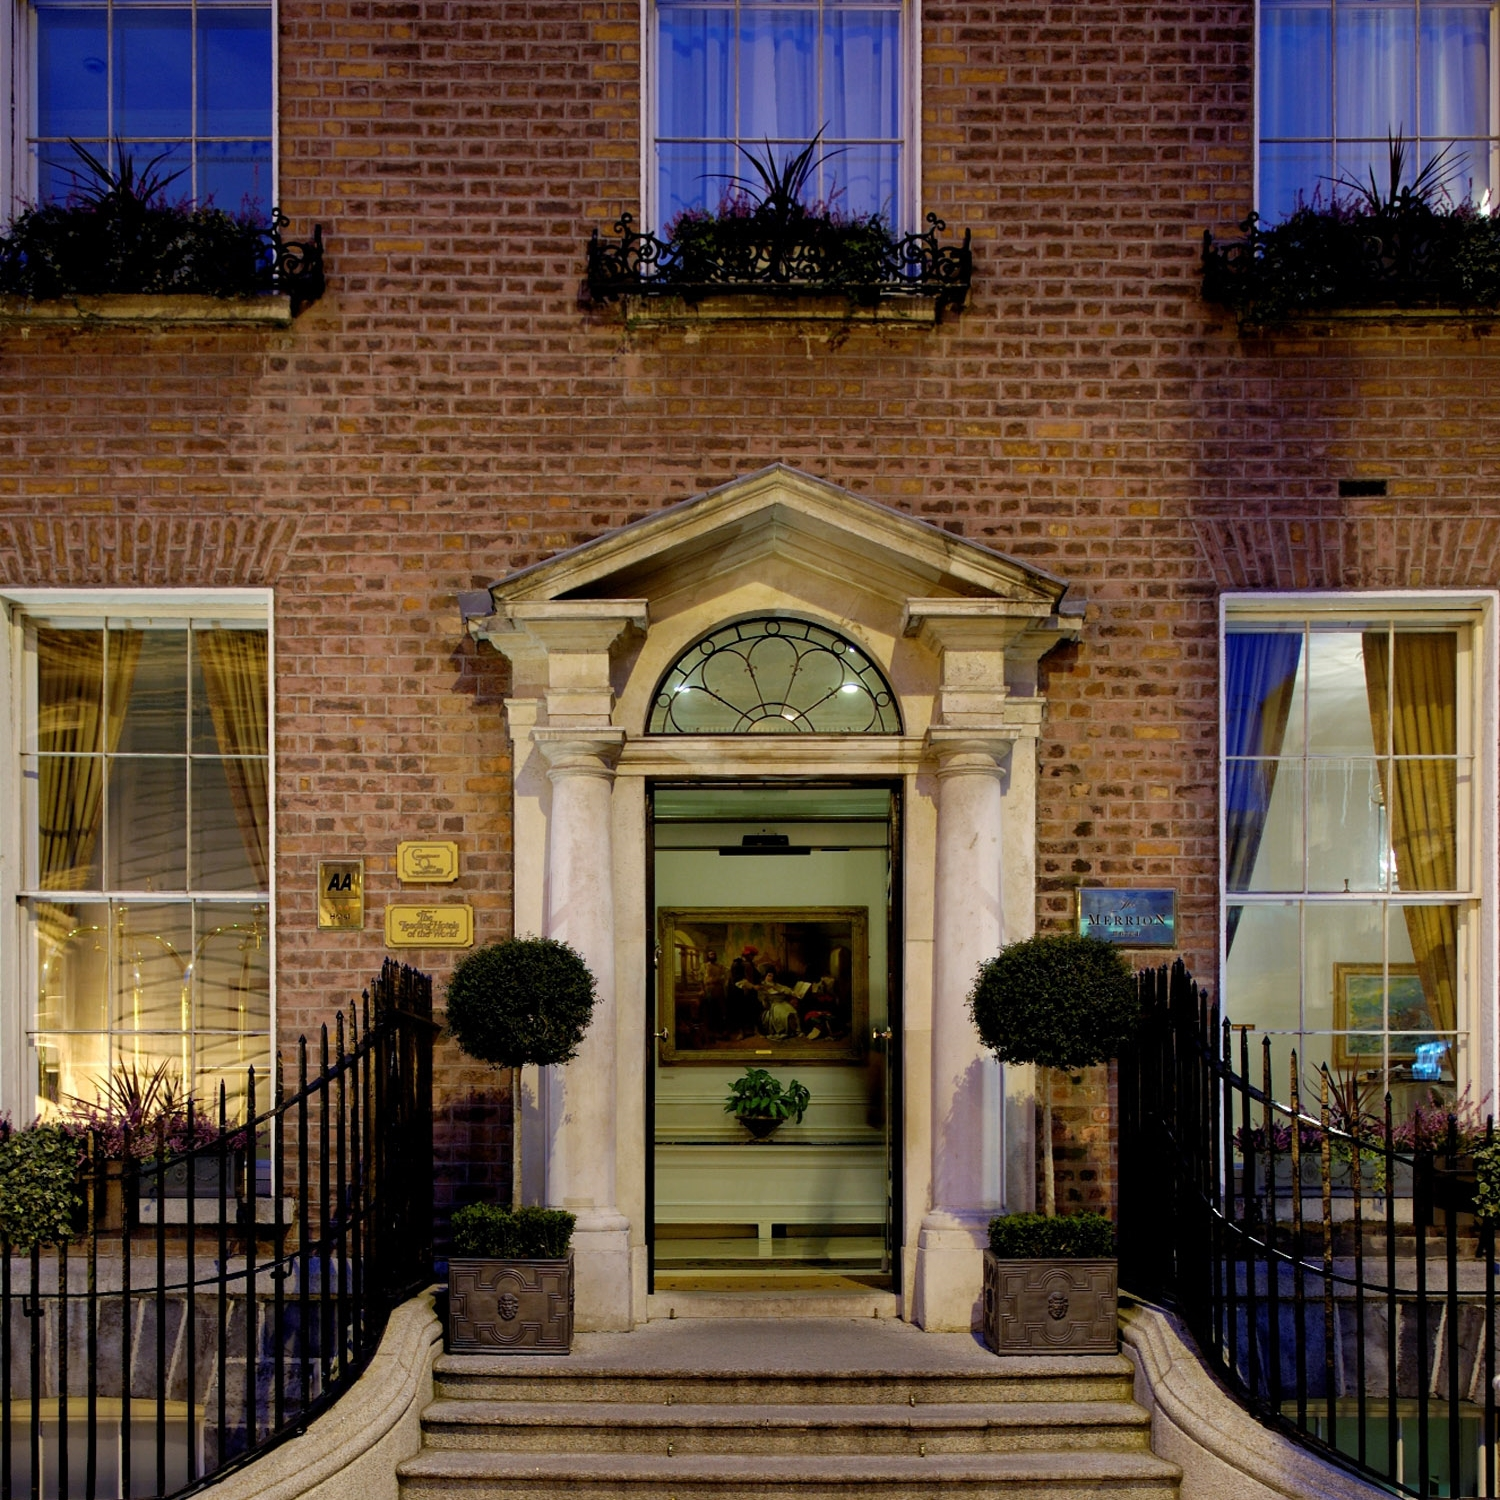 KTA_The-Merrion-Dublin-Evening-External-Shot-2.jpg